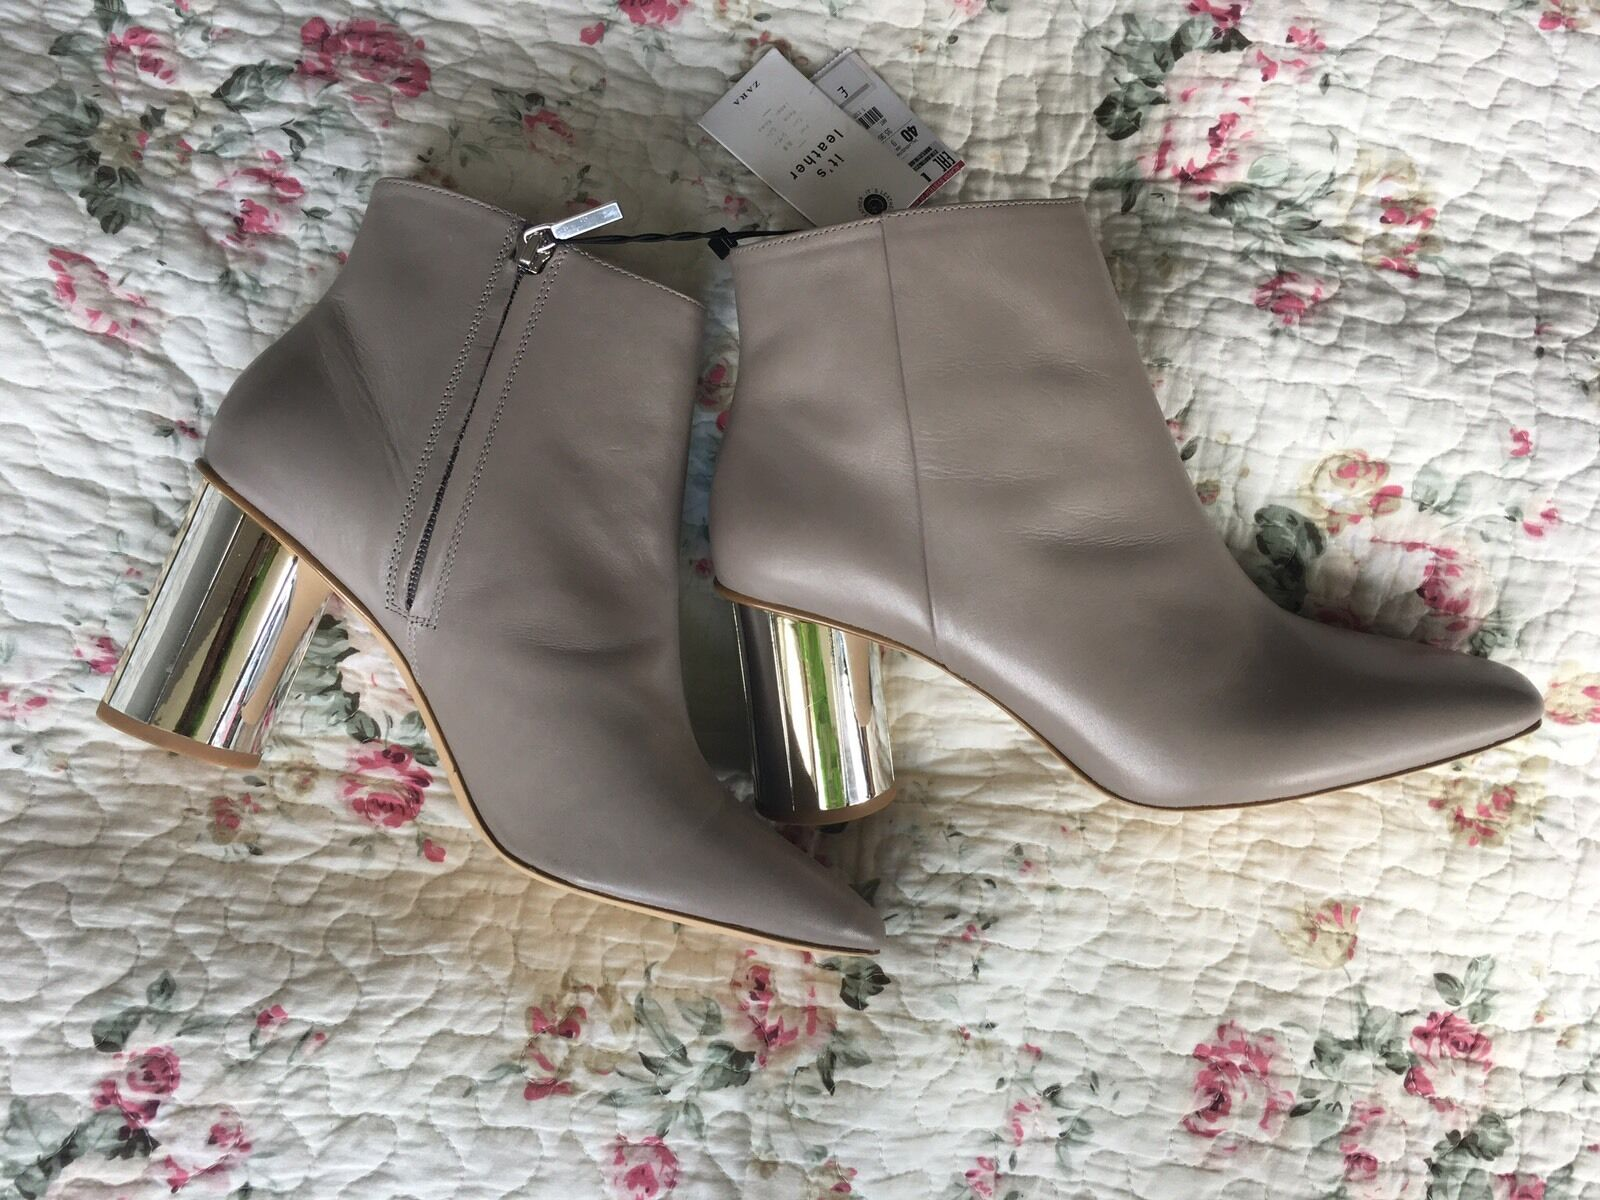 New Zara 100% Leather Taupe Nude Ankle Boots Mirror Chunky Heels Size Rare